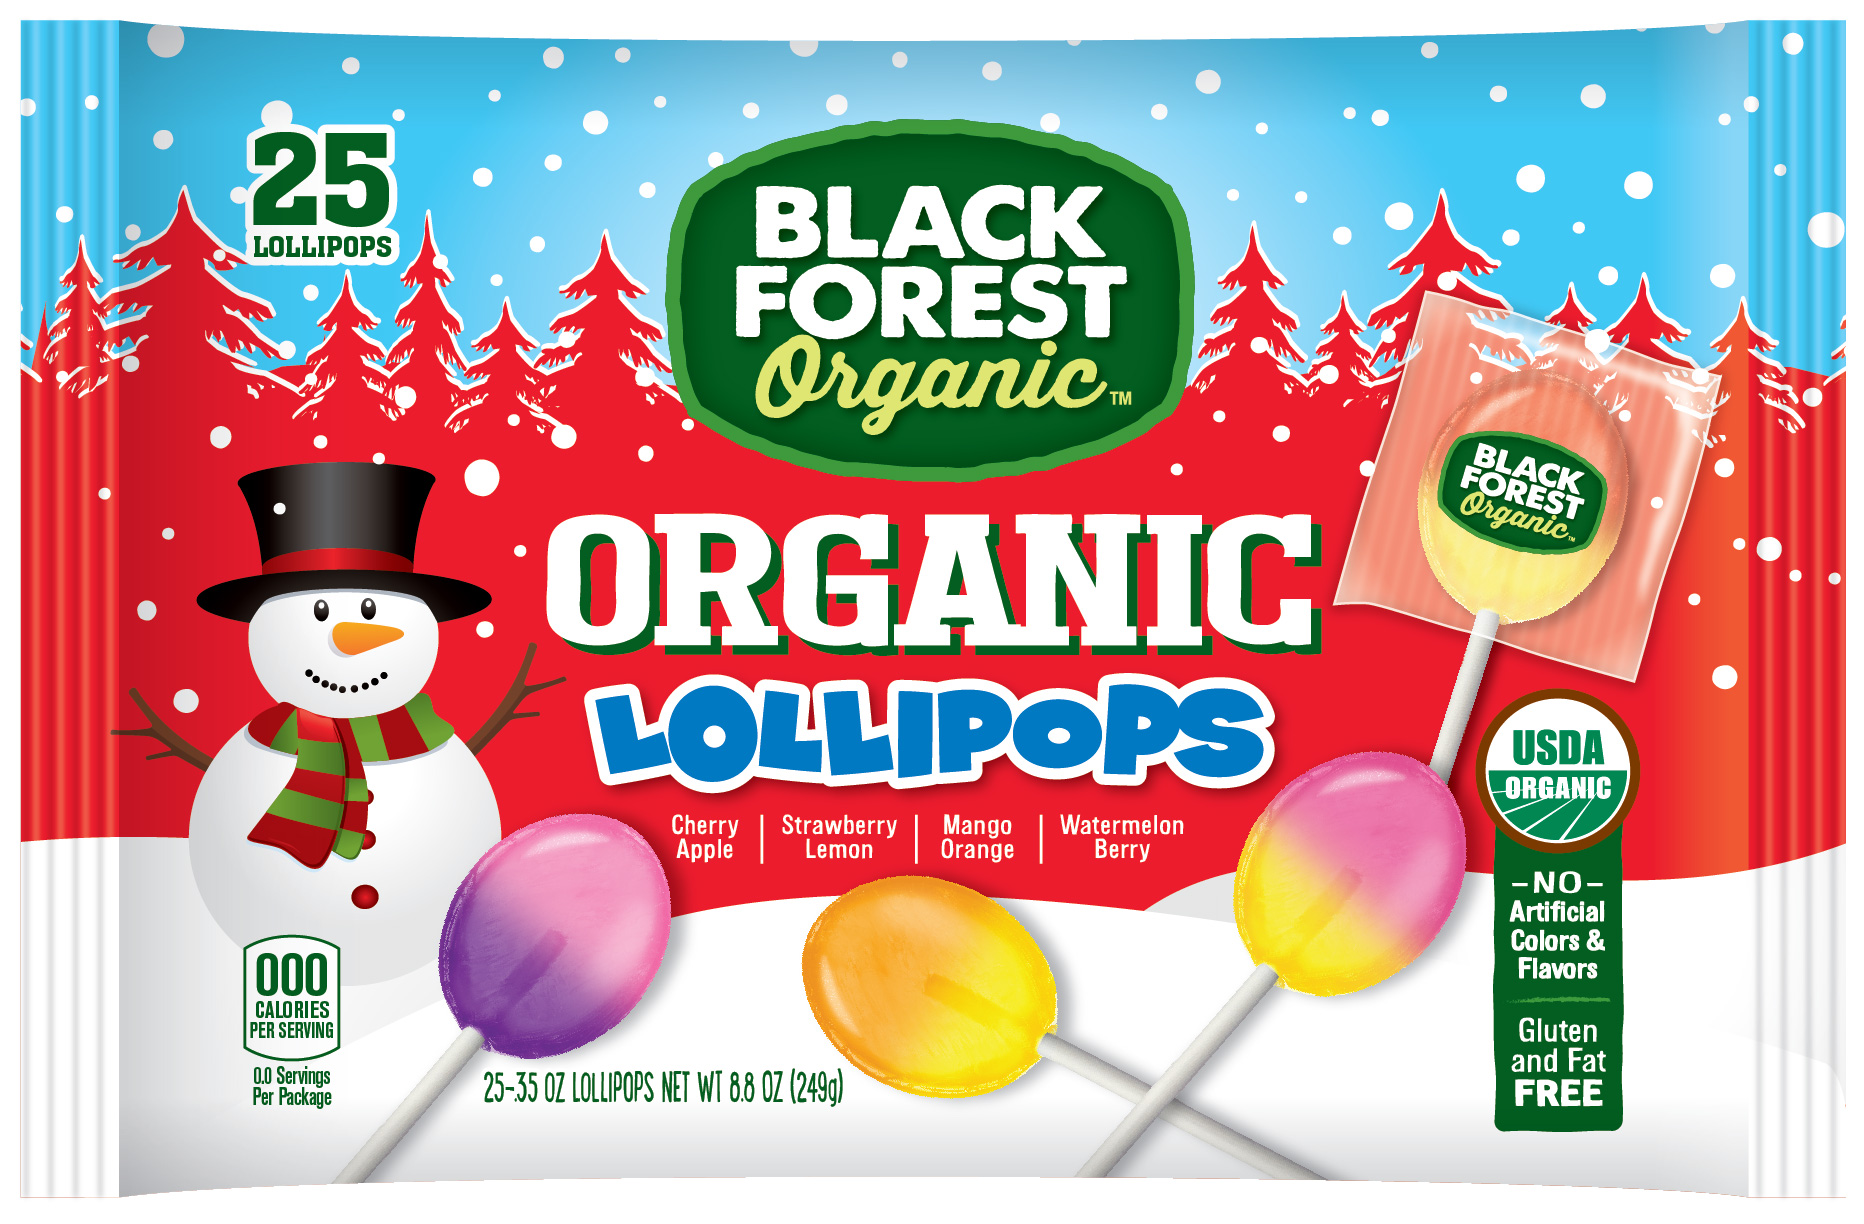 Black Forest Organic Holiday Lollipops, 25 Count Bag by Ferrara Candy Company